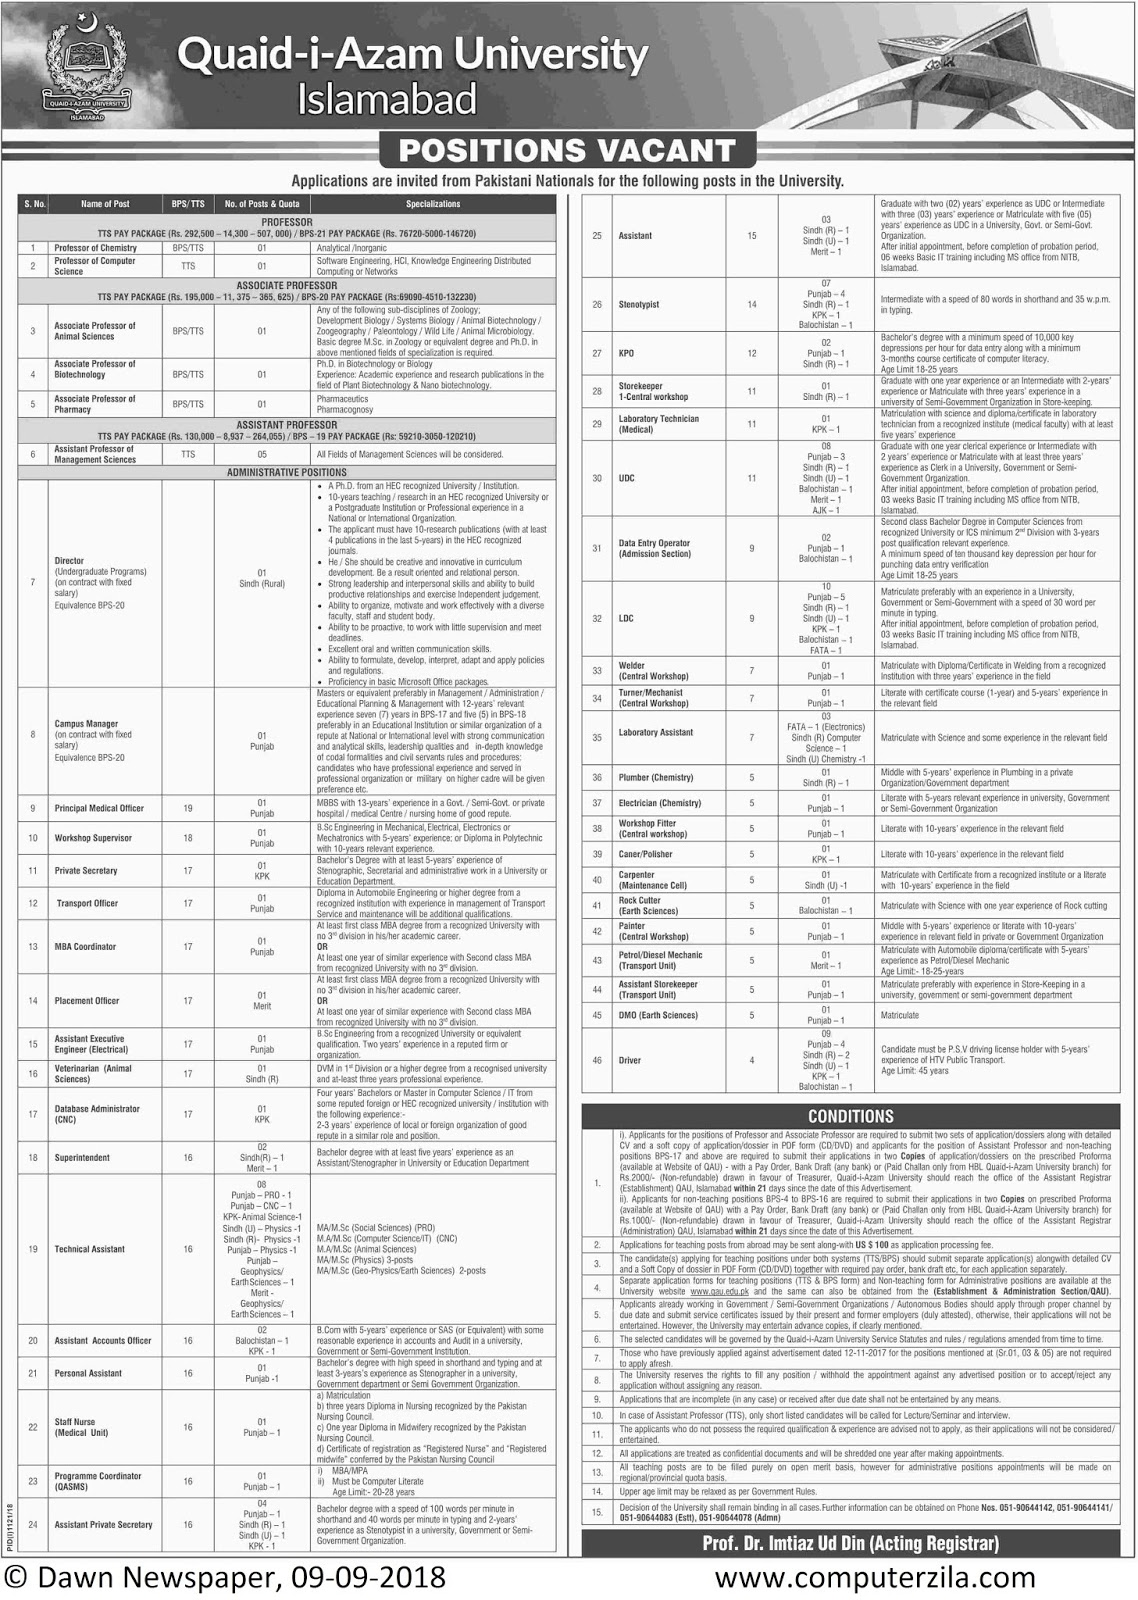 Positions Vacant at Quaid-i-Azam University